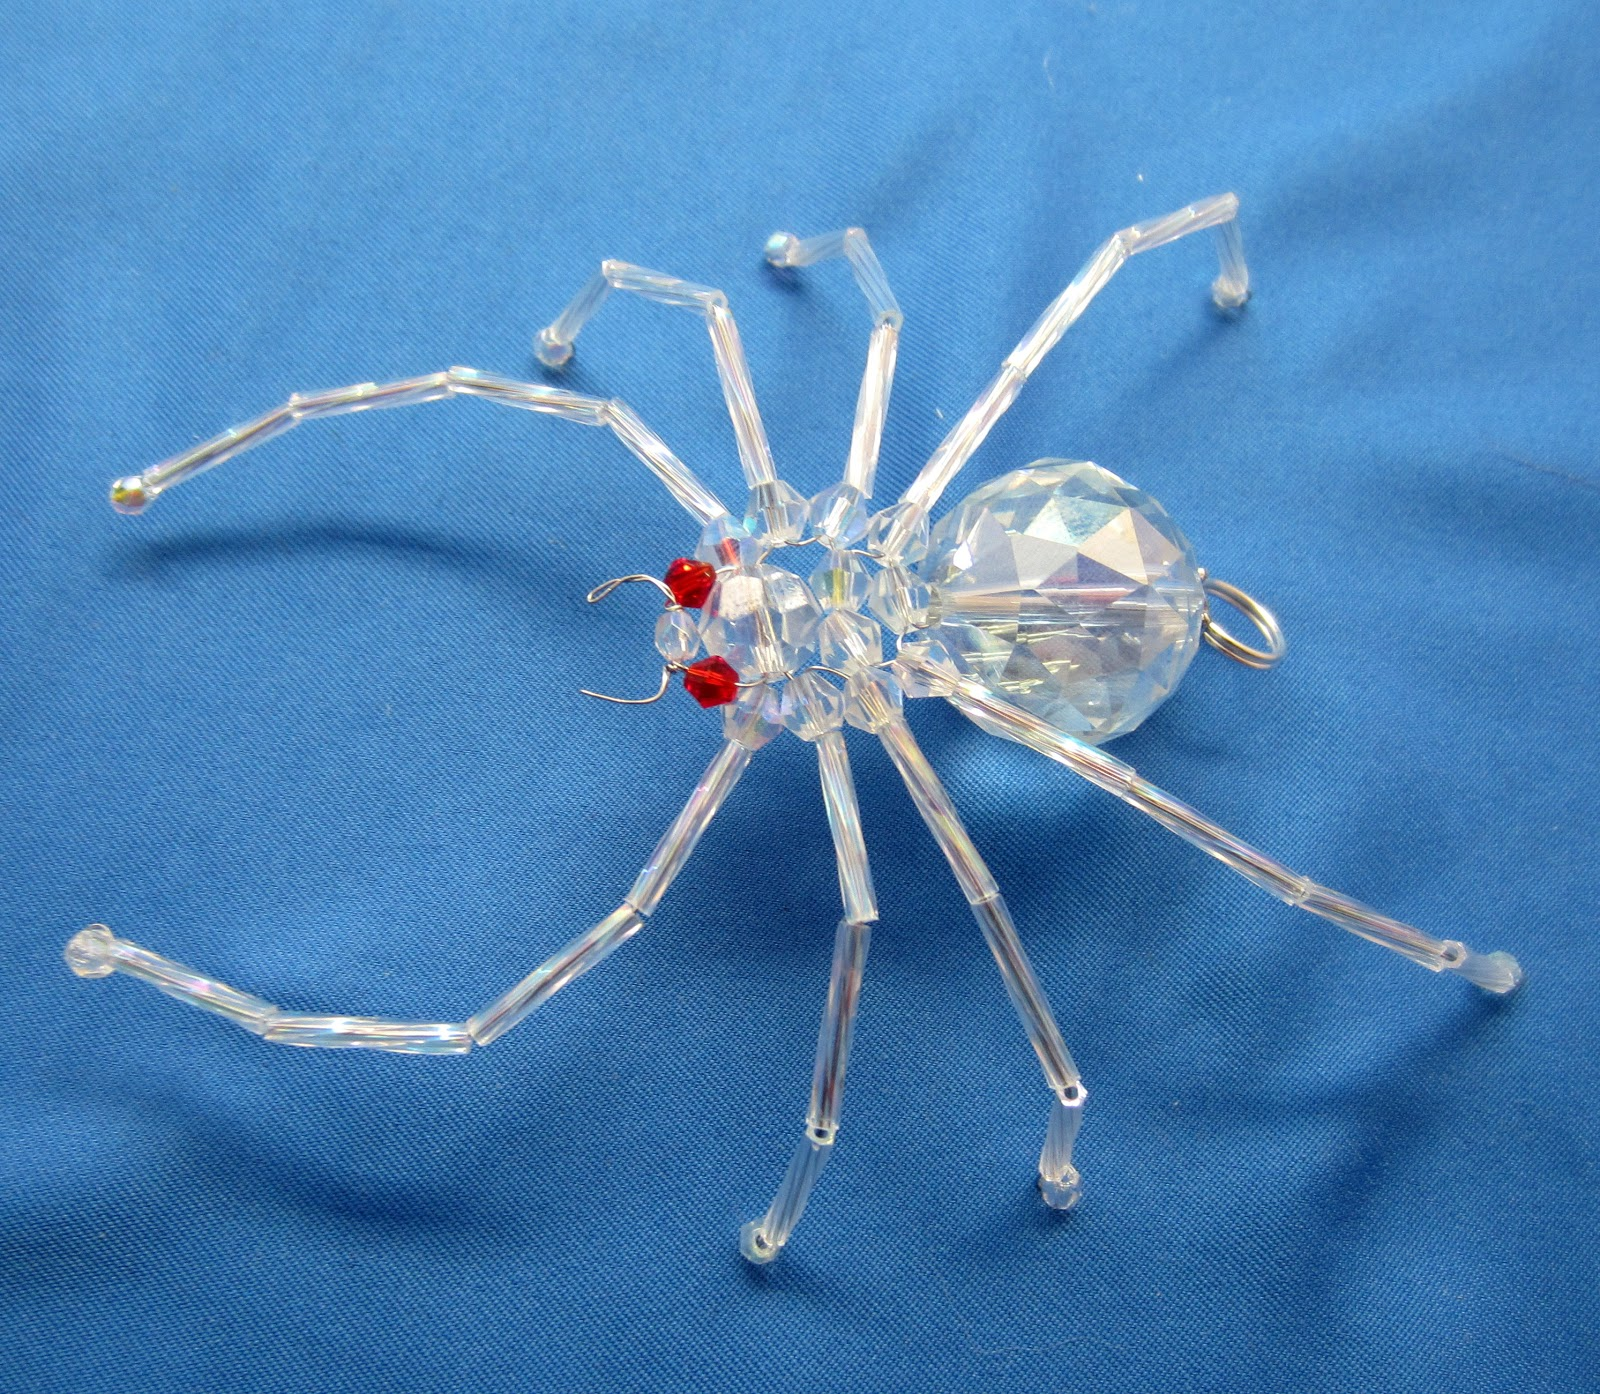 BEAD AND WIRE SPIDER ORNAMENTS | Beads and Wire by Kloskrafts